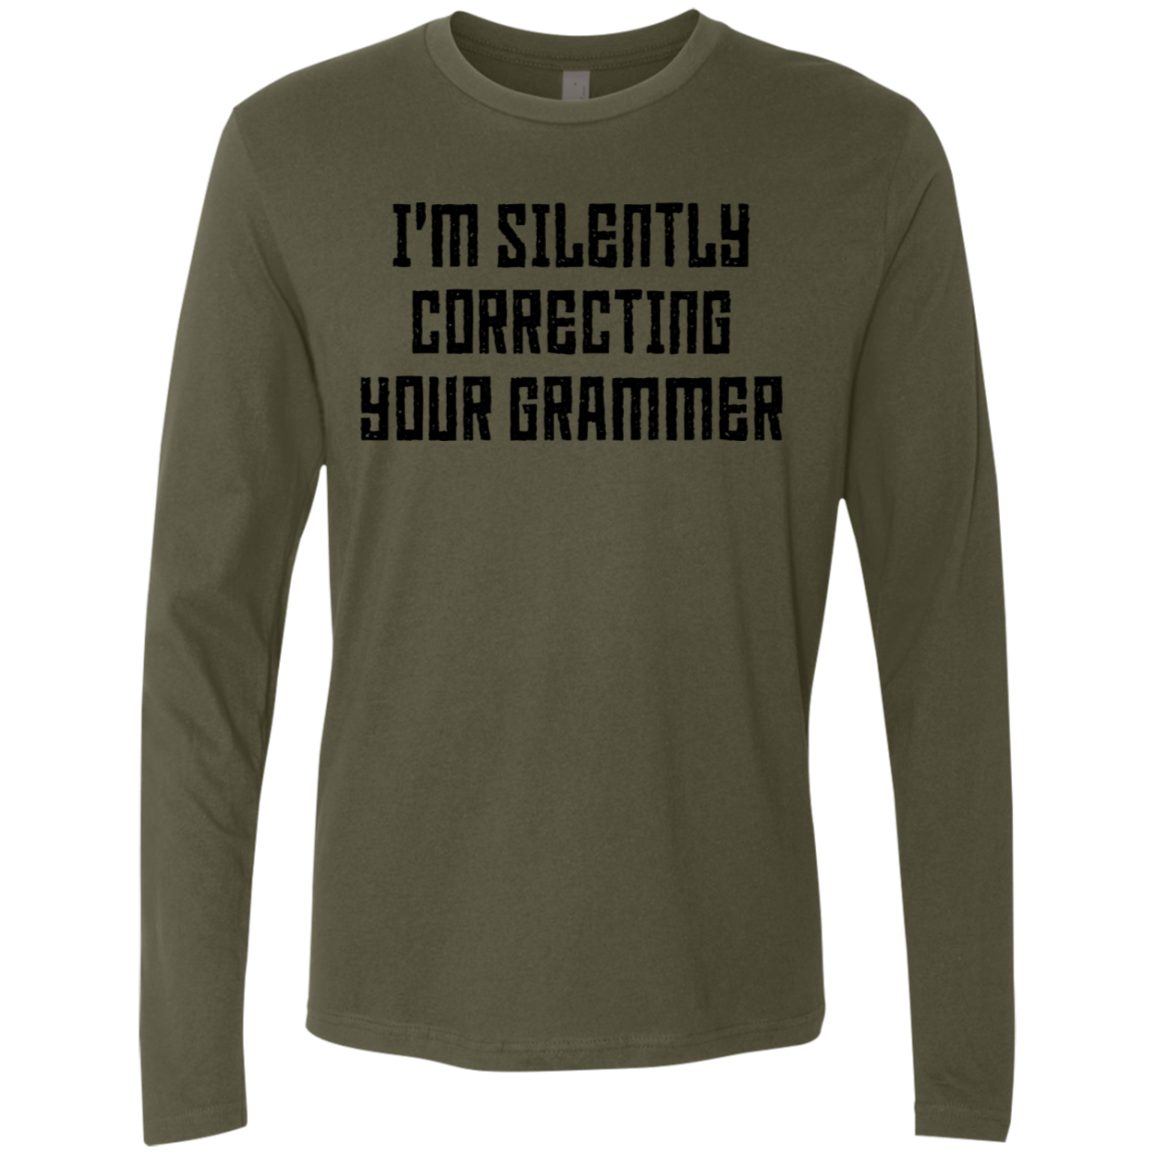 I'm Silently Correcting Your Grammer Men's Long Sleeve Tee